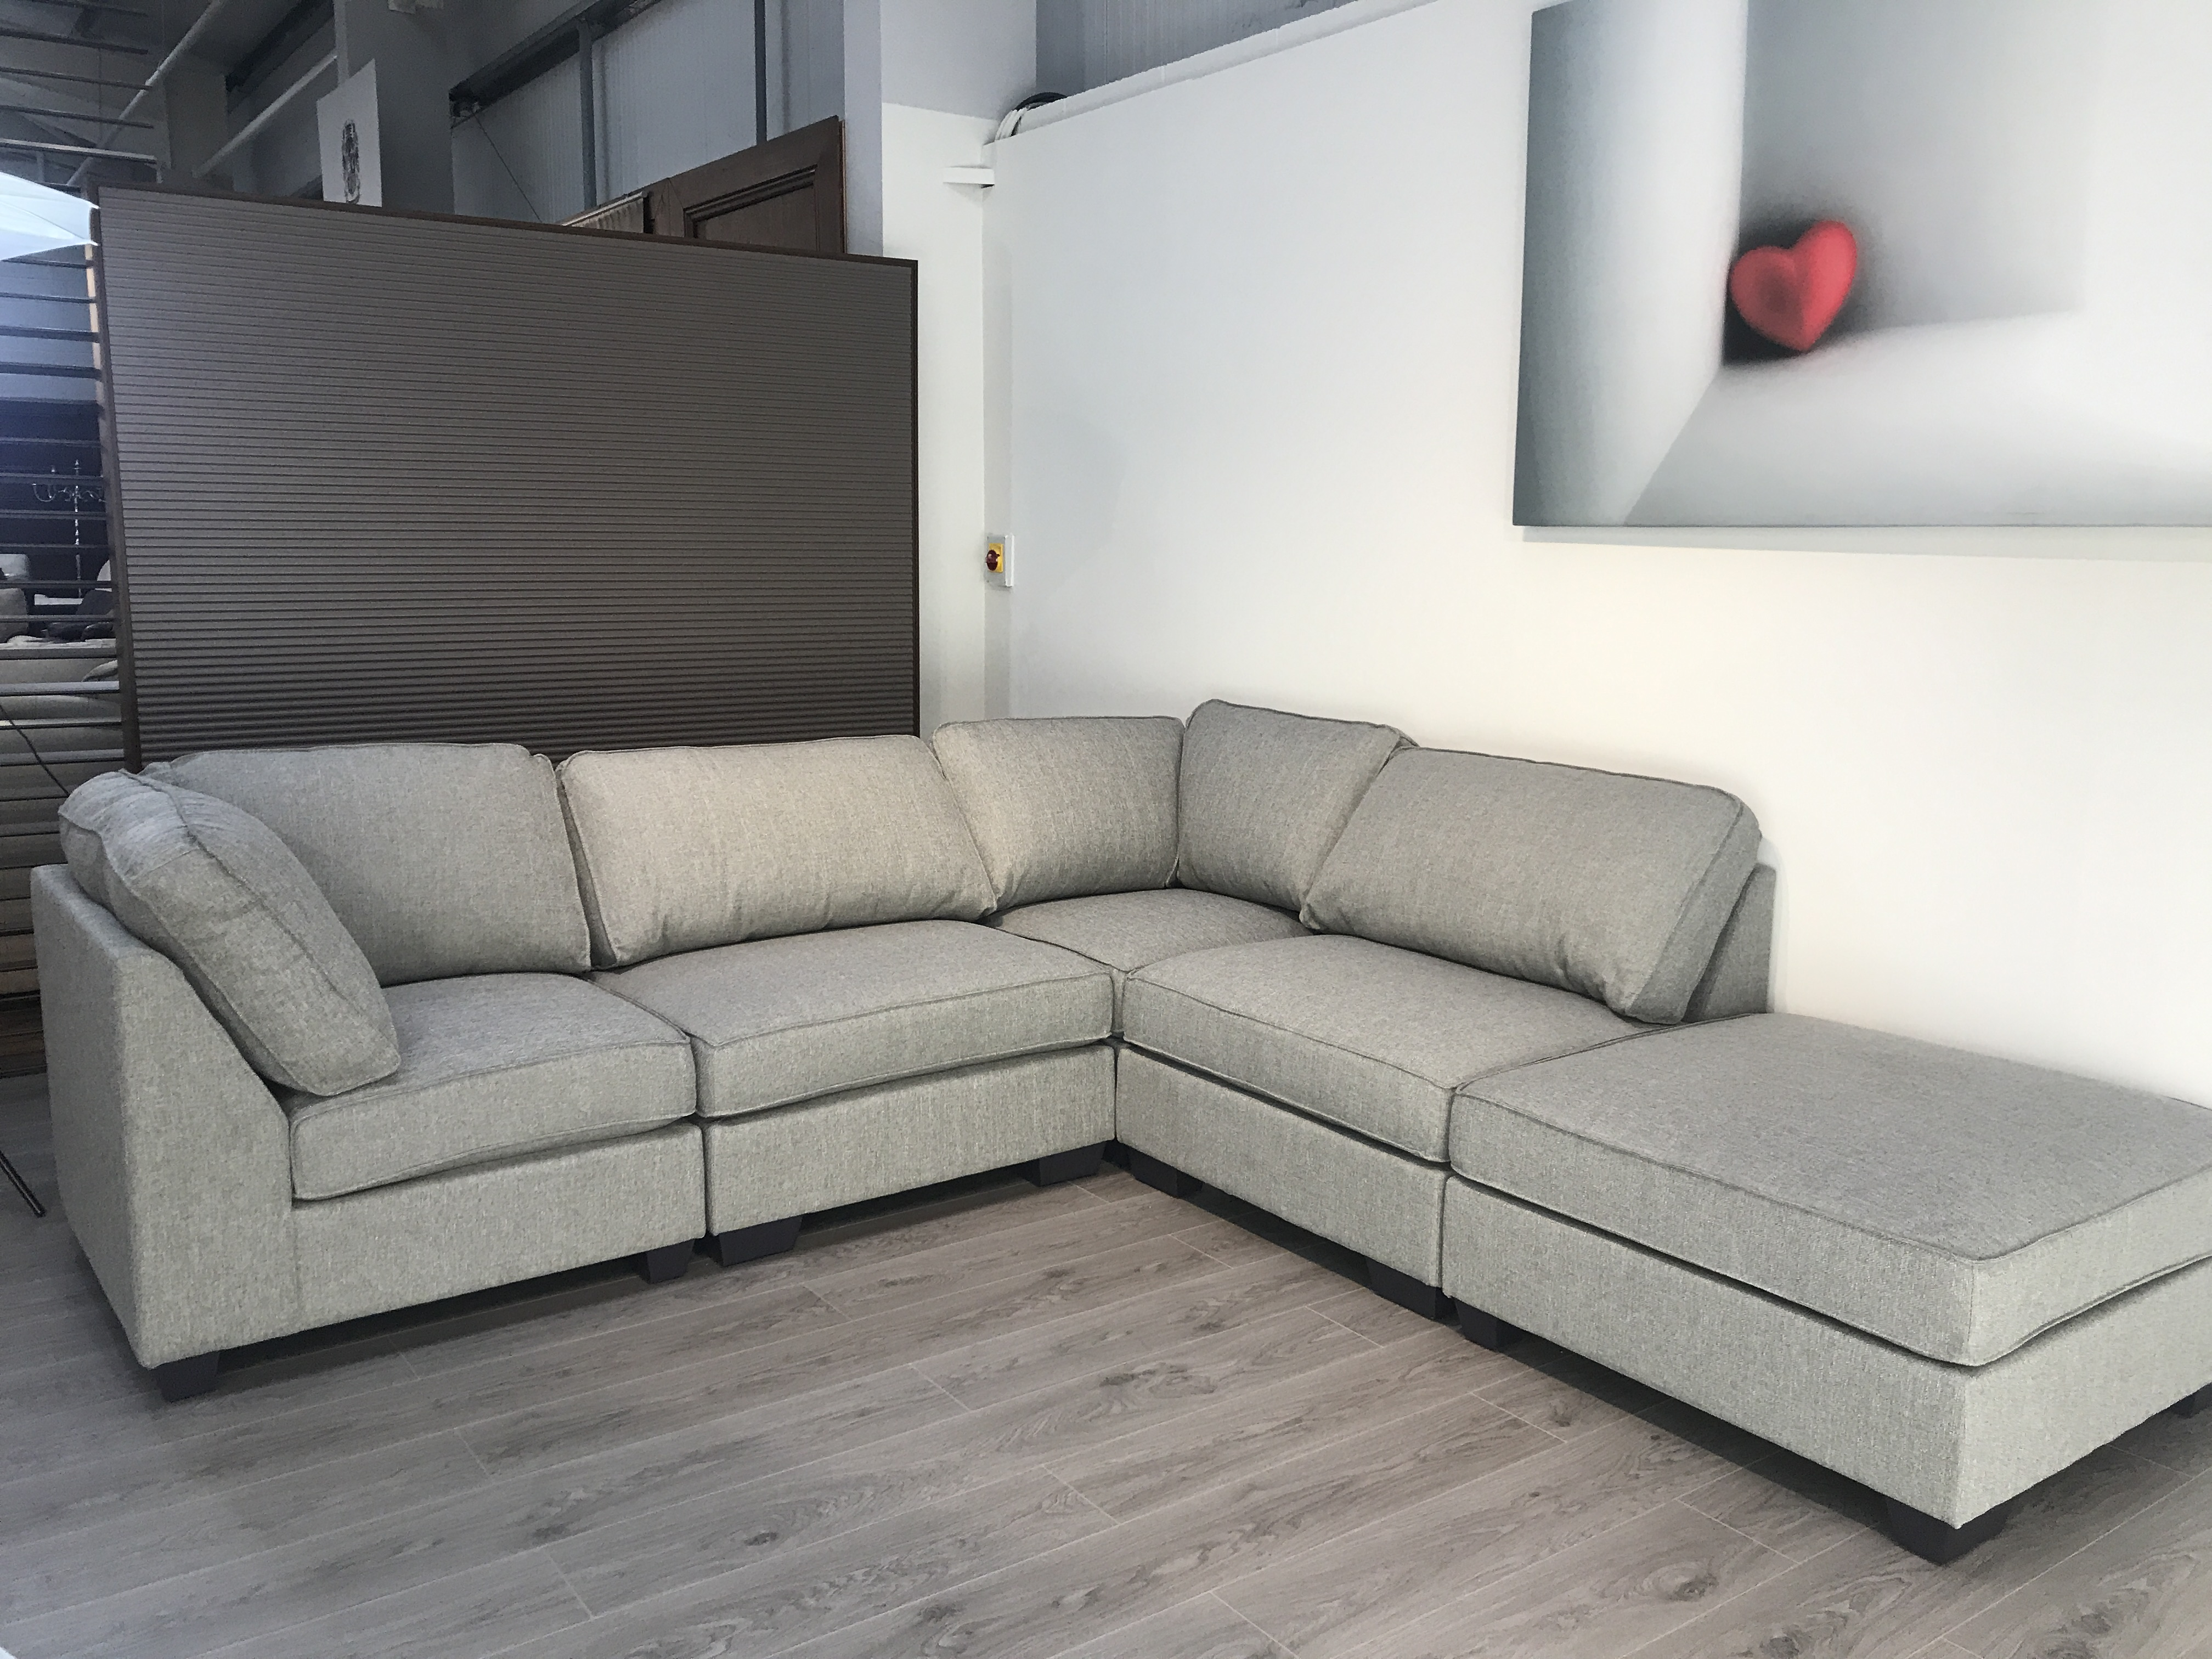 comfy sofas uk furniture gallery sofa amore madrid modular chaise corner with